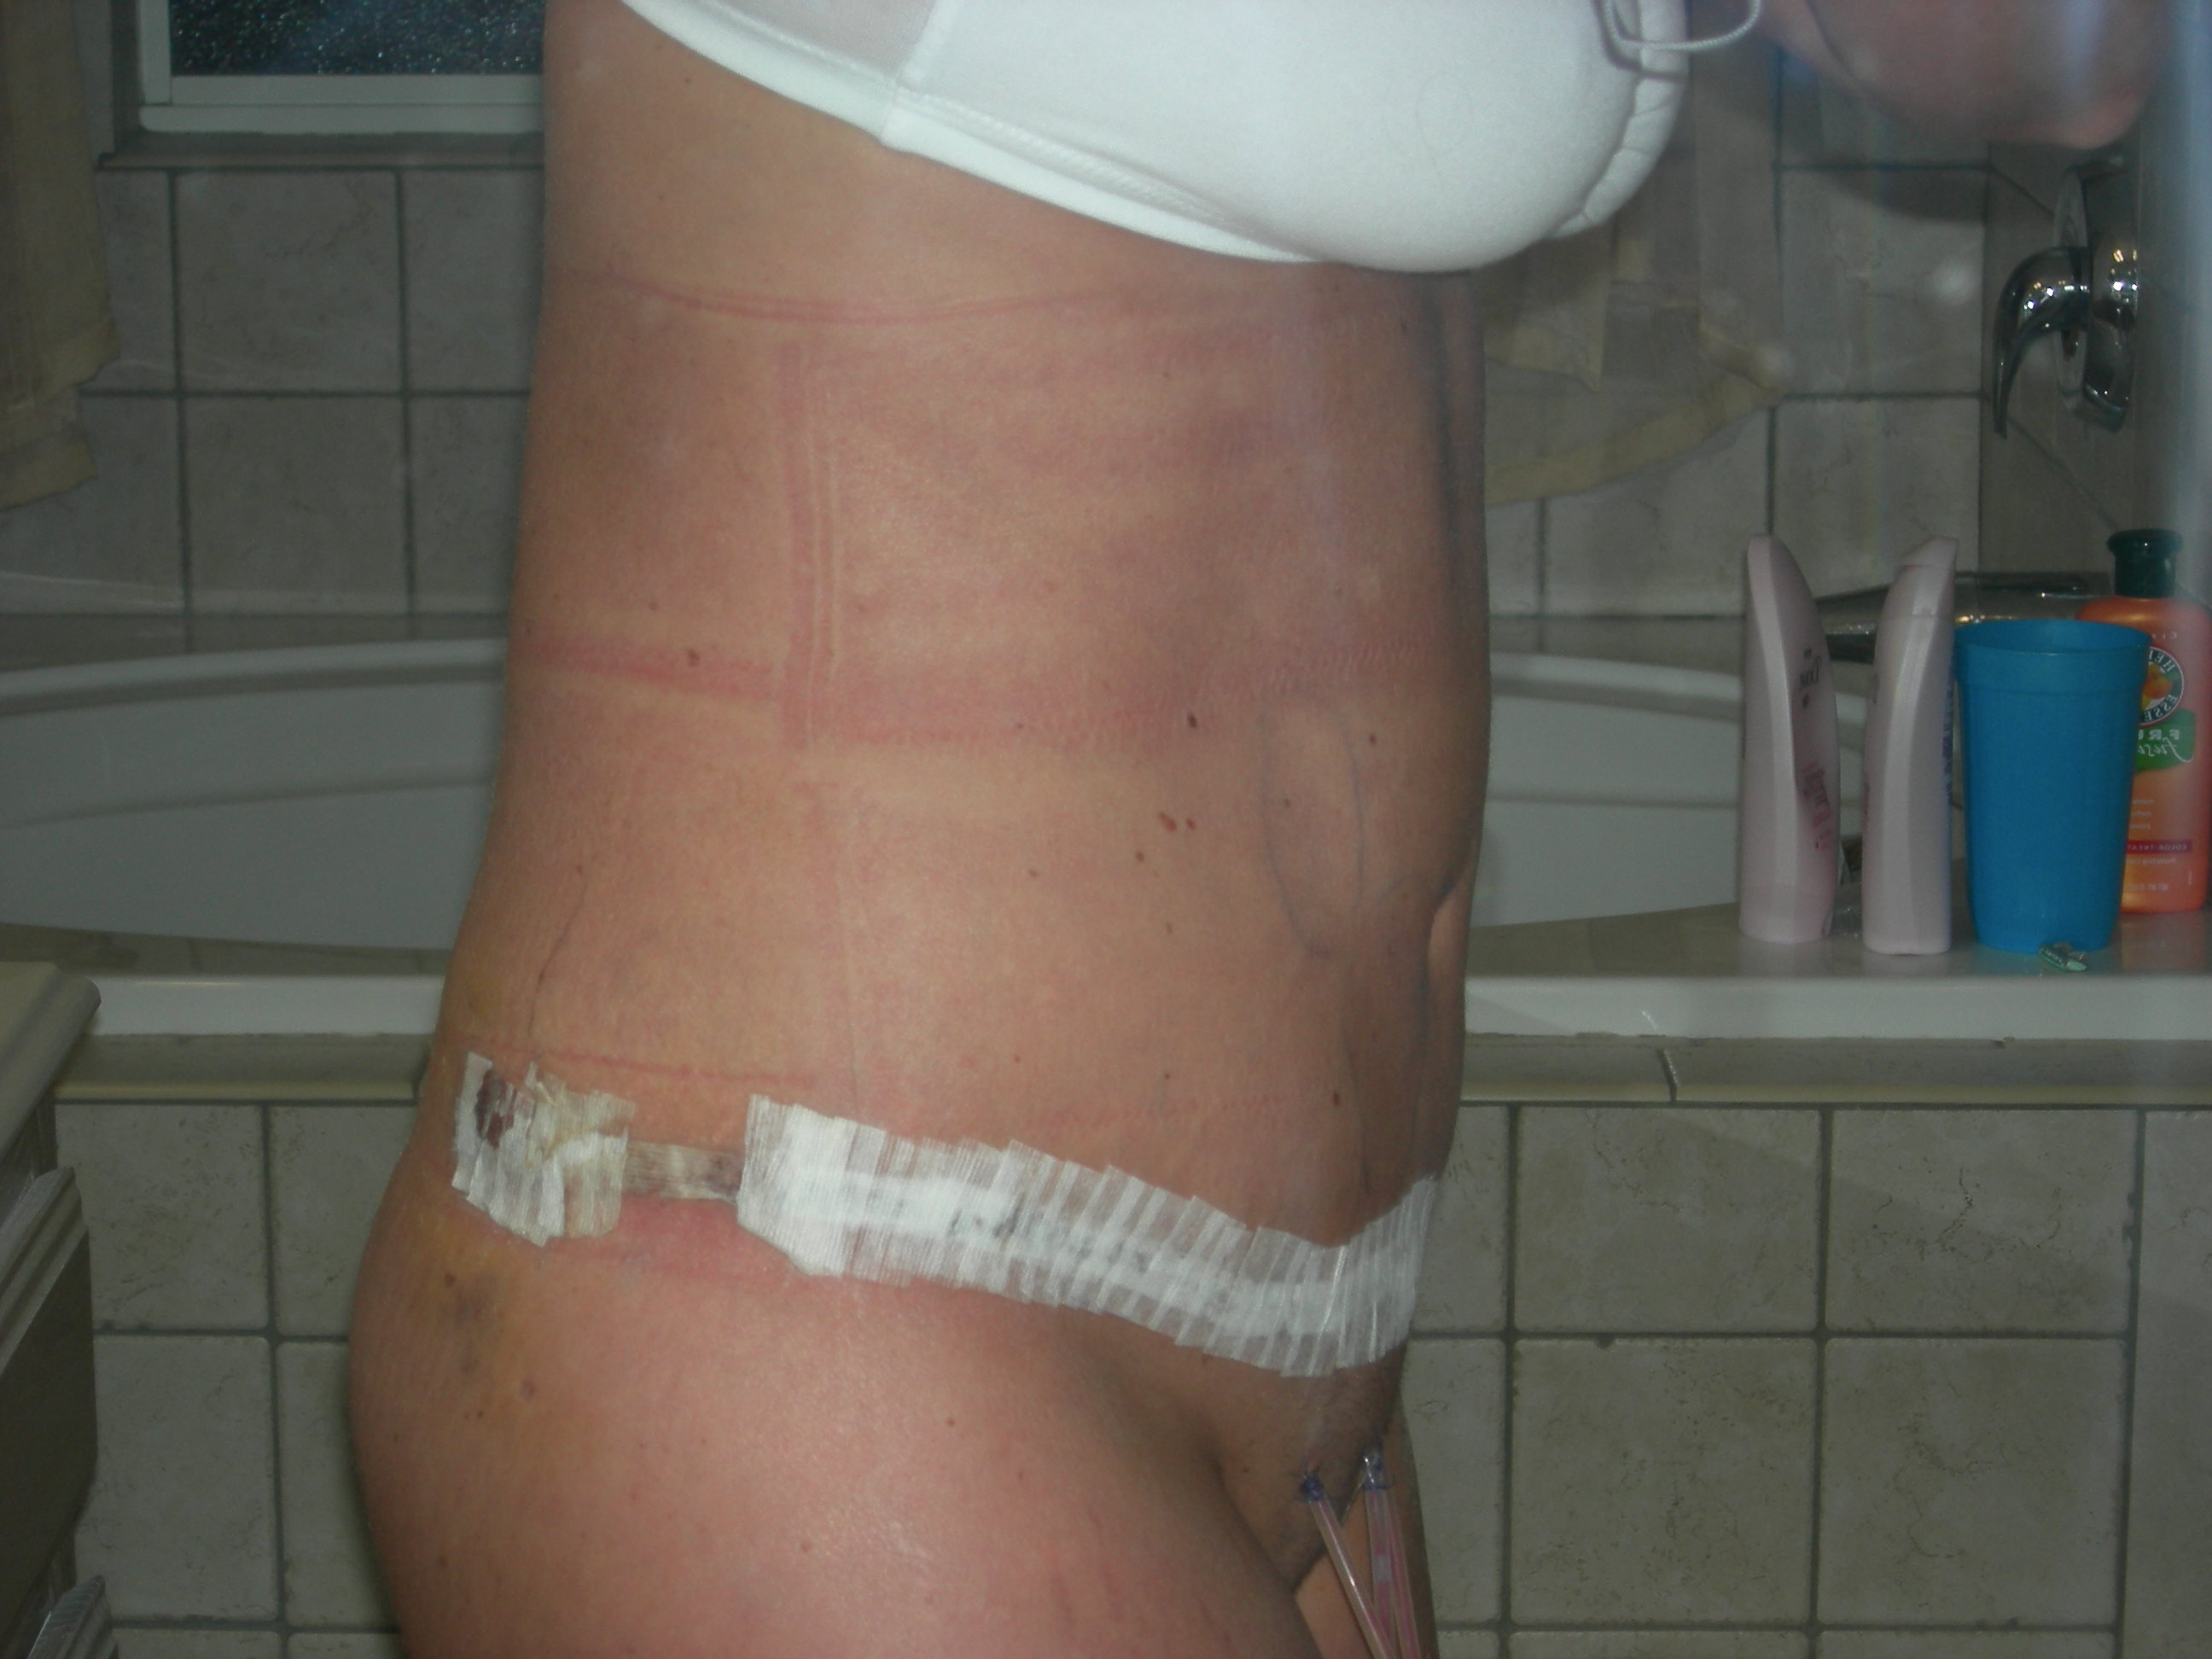 Post-op side view